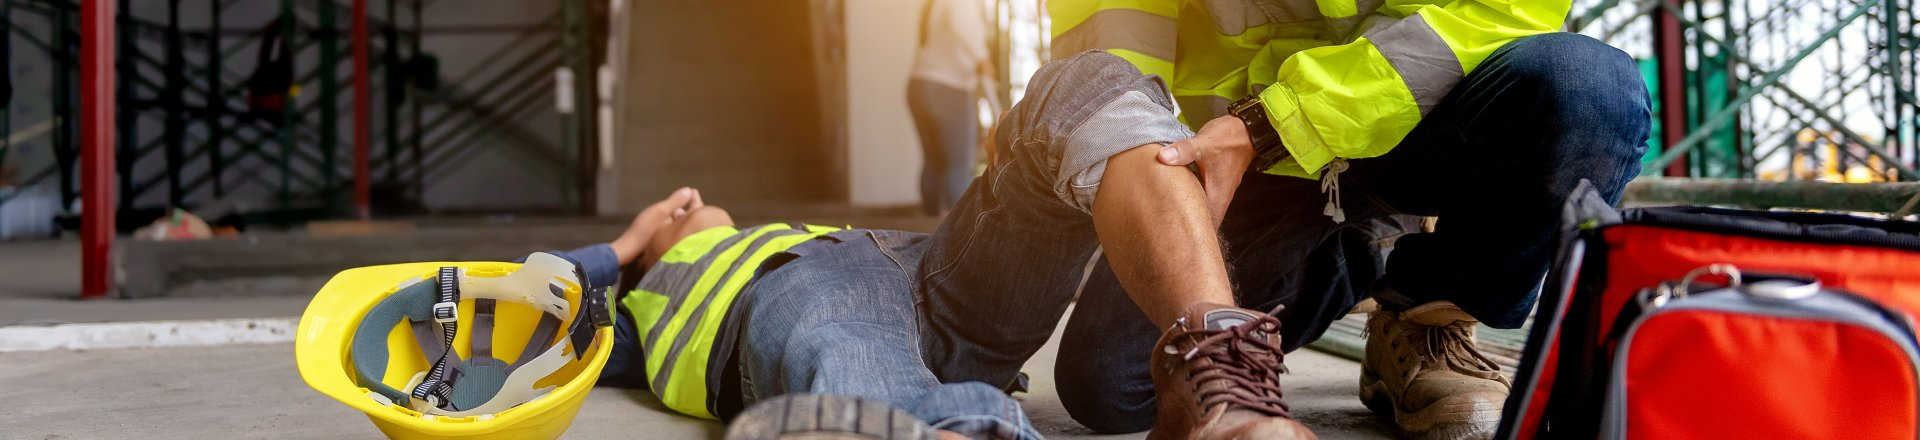 Accident At Work Of Construction Worker At Site, Construction Accidents Lawsuit Claims Lawyer